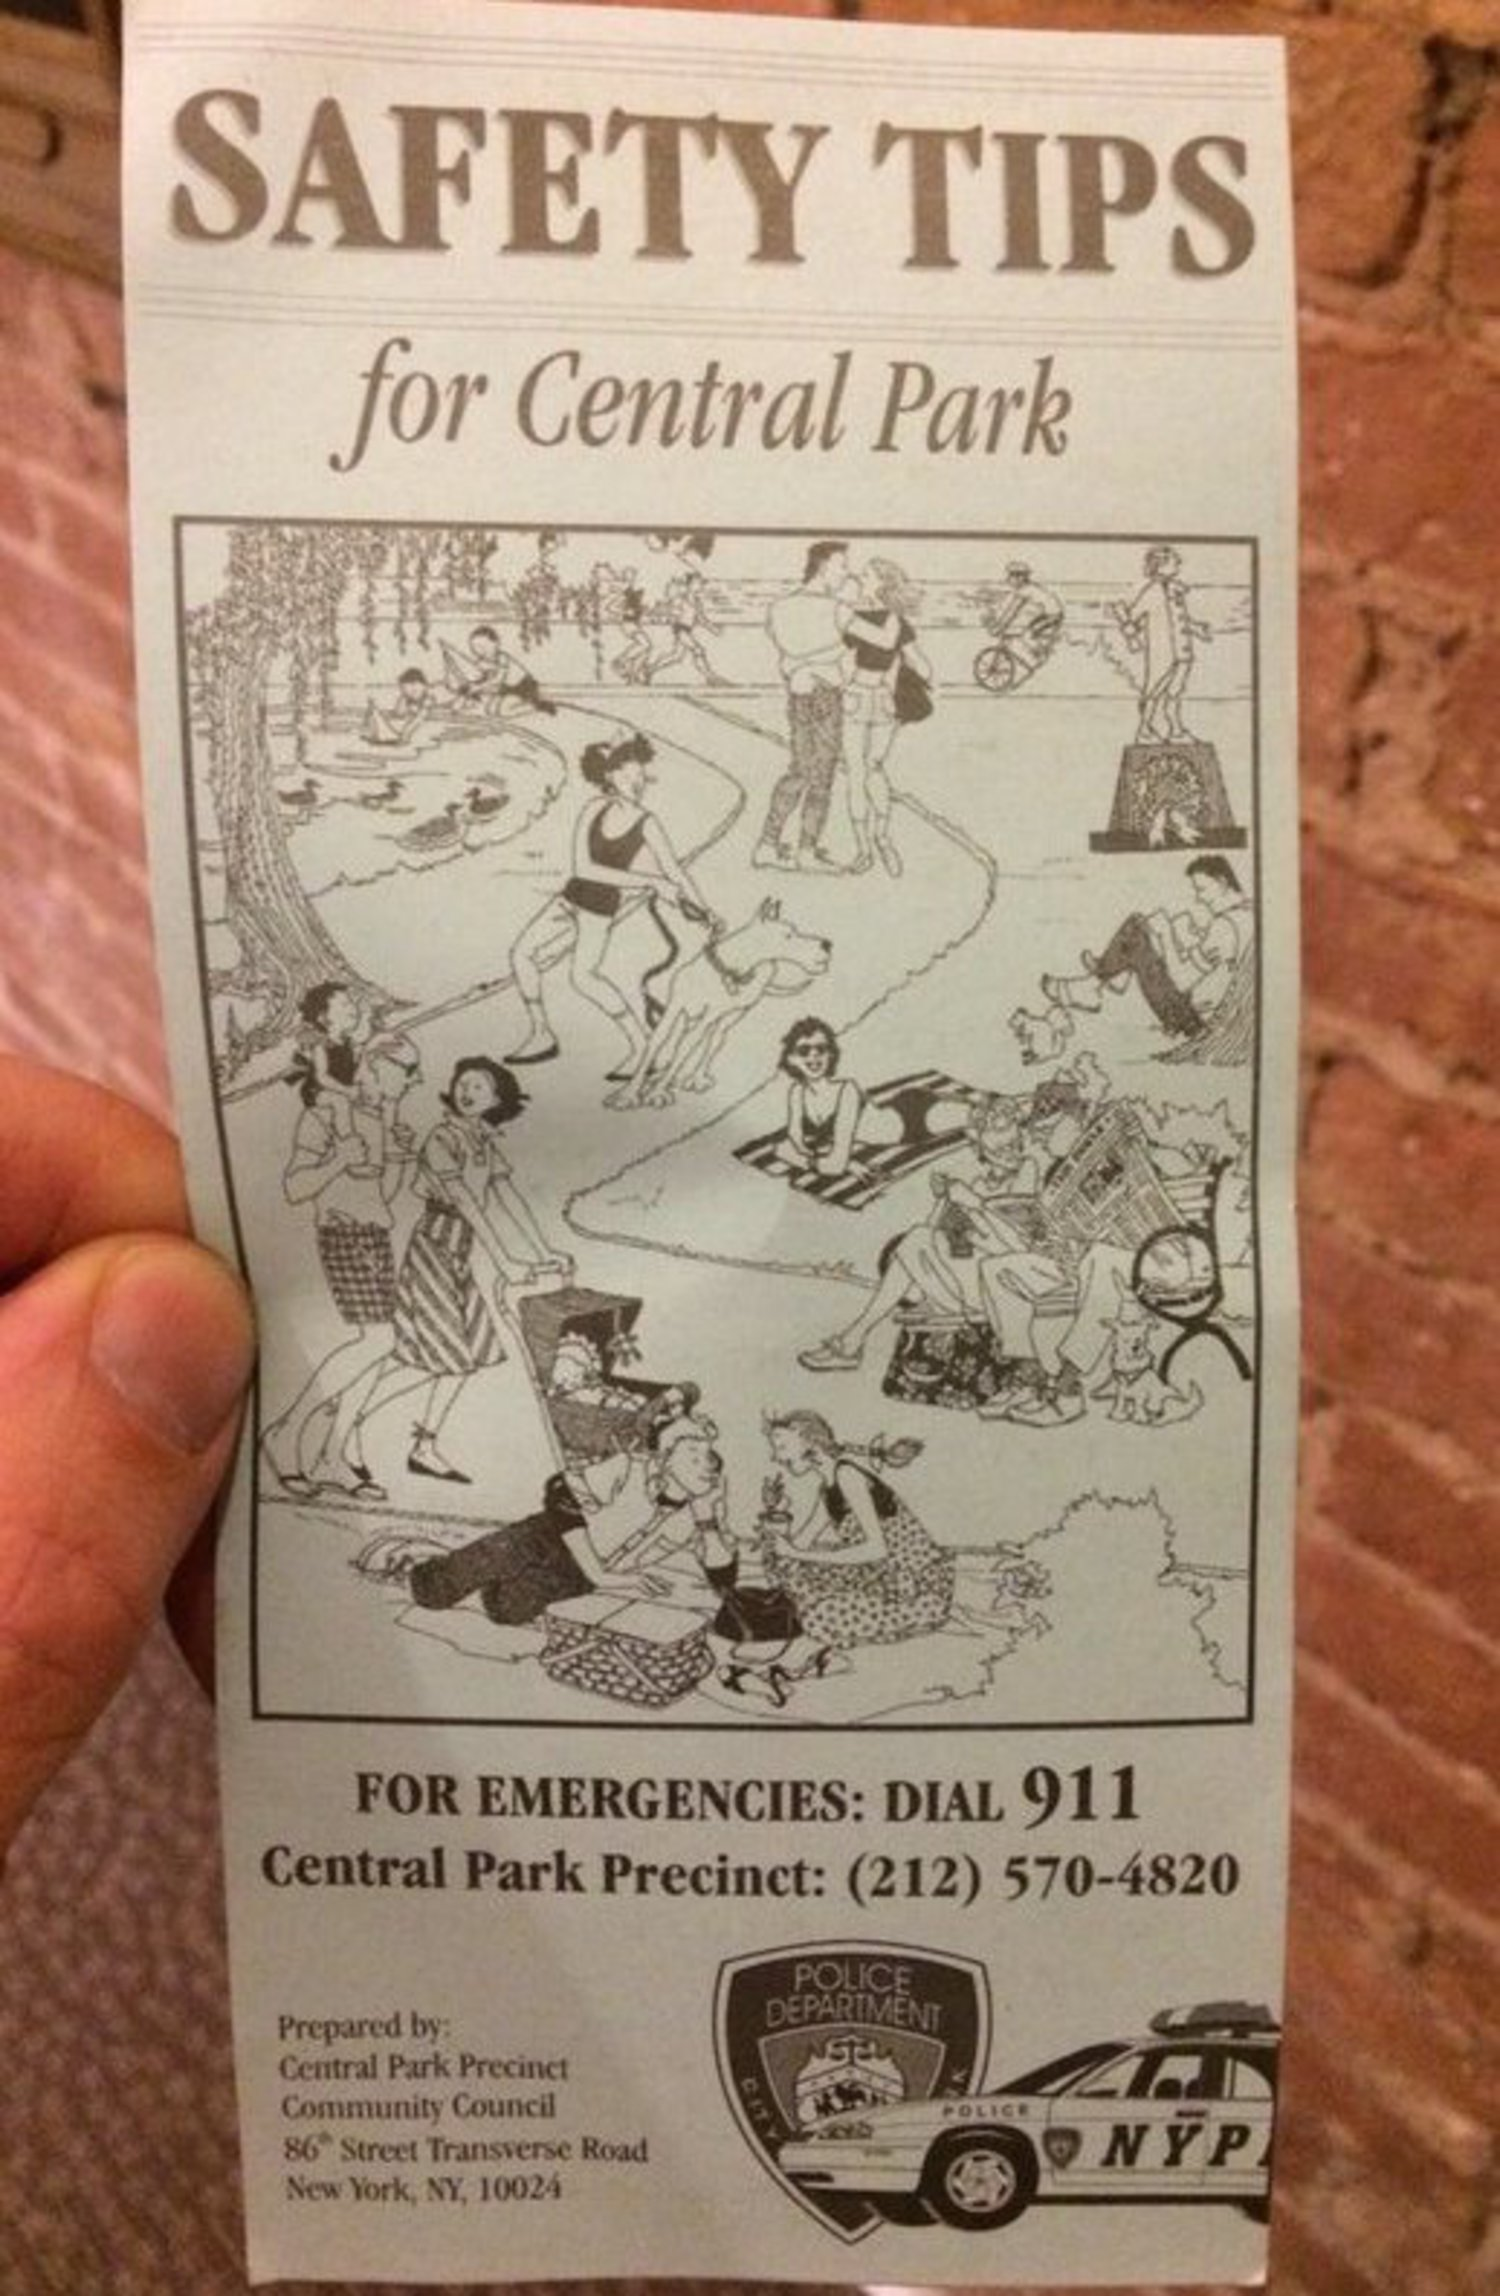 Safety Tips for Central Park